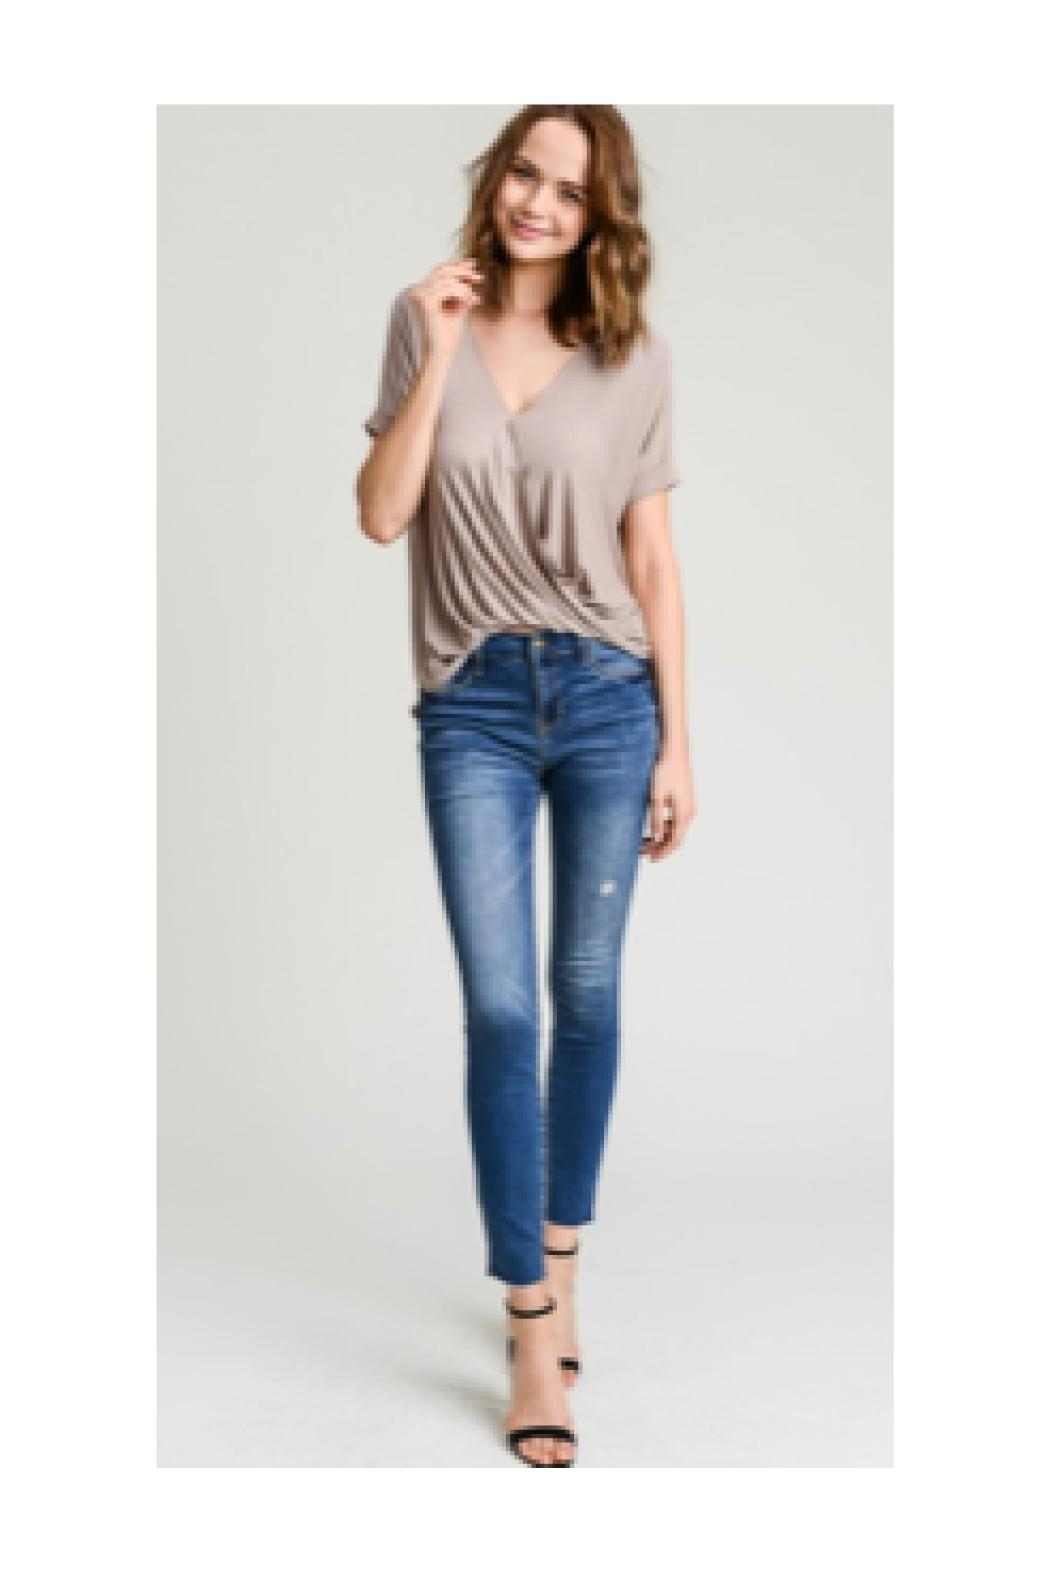 Polly & Esther Taupe V-Neck Top - Main Image